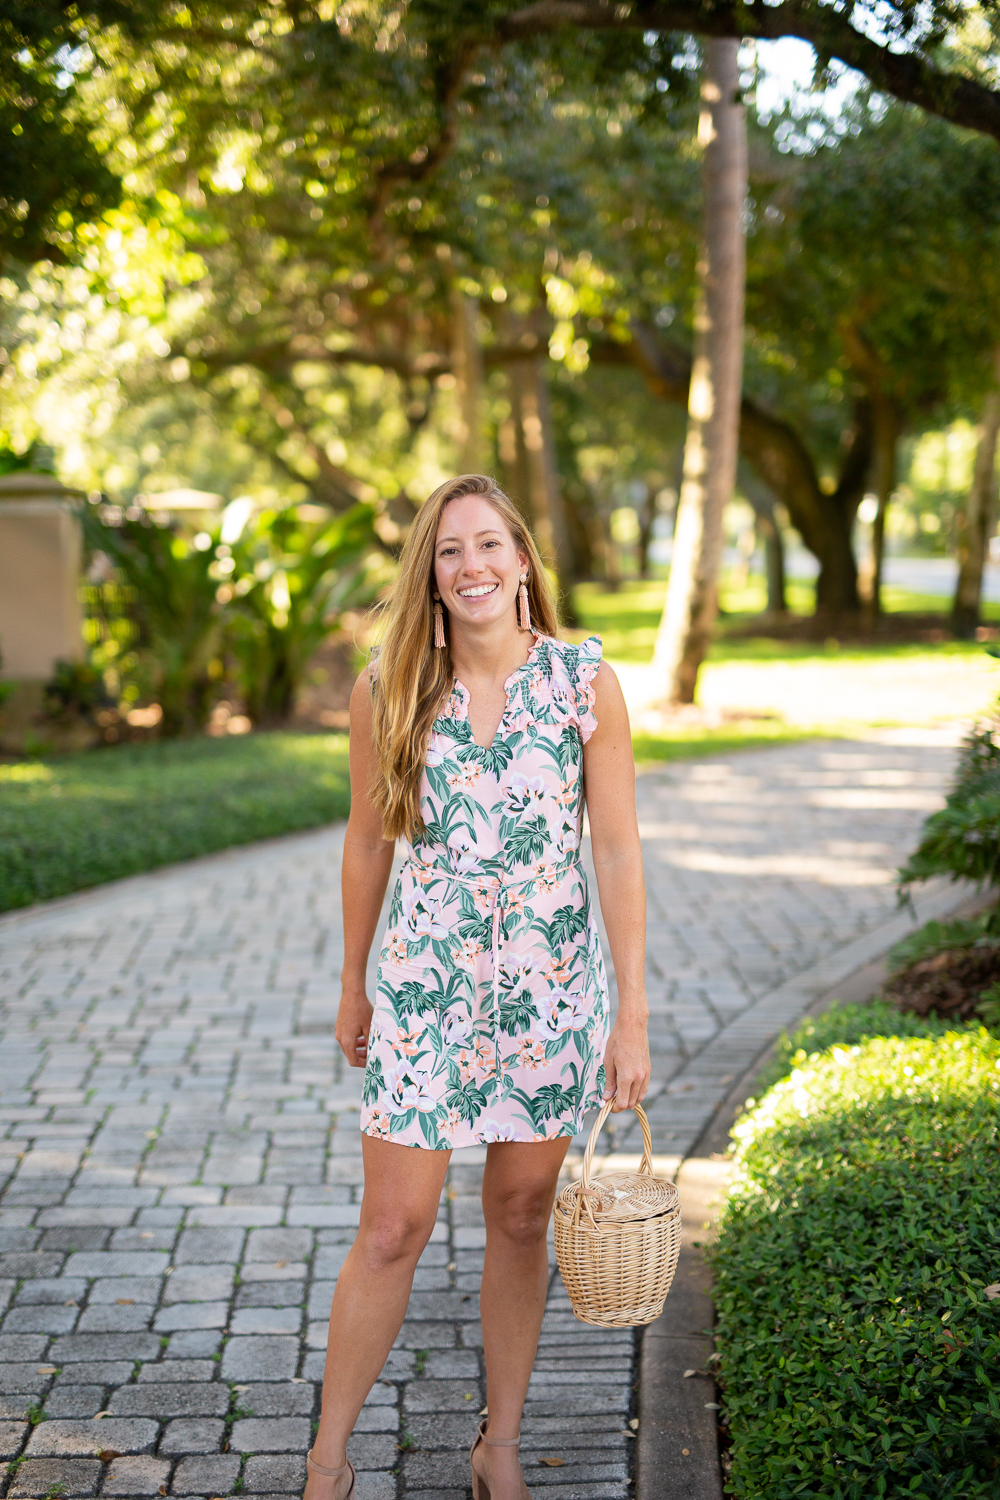 Floral Dresses to Wear to a Wedding | Sunshine Style